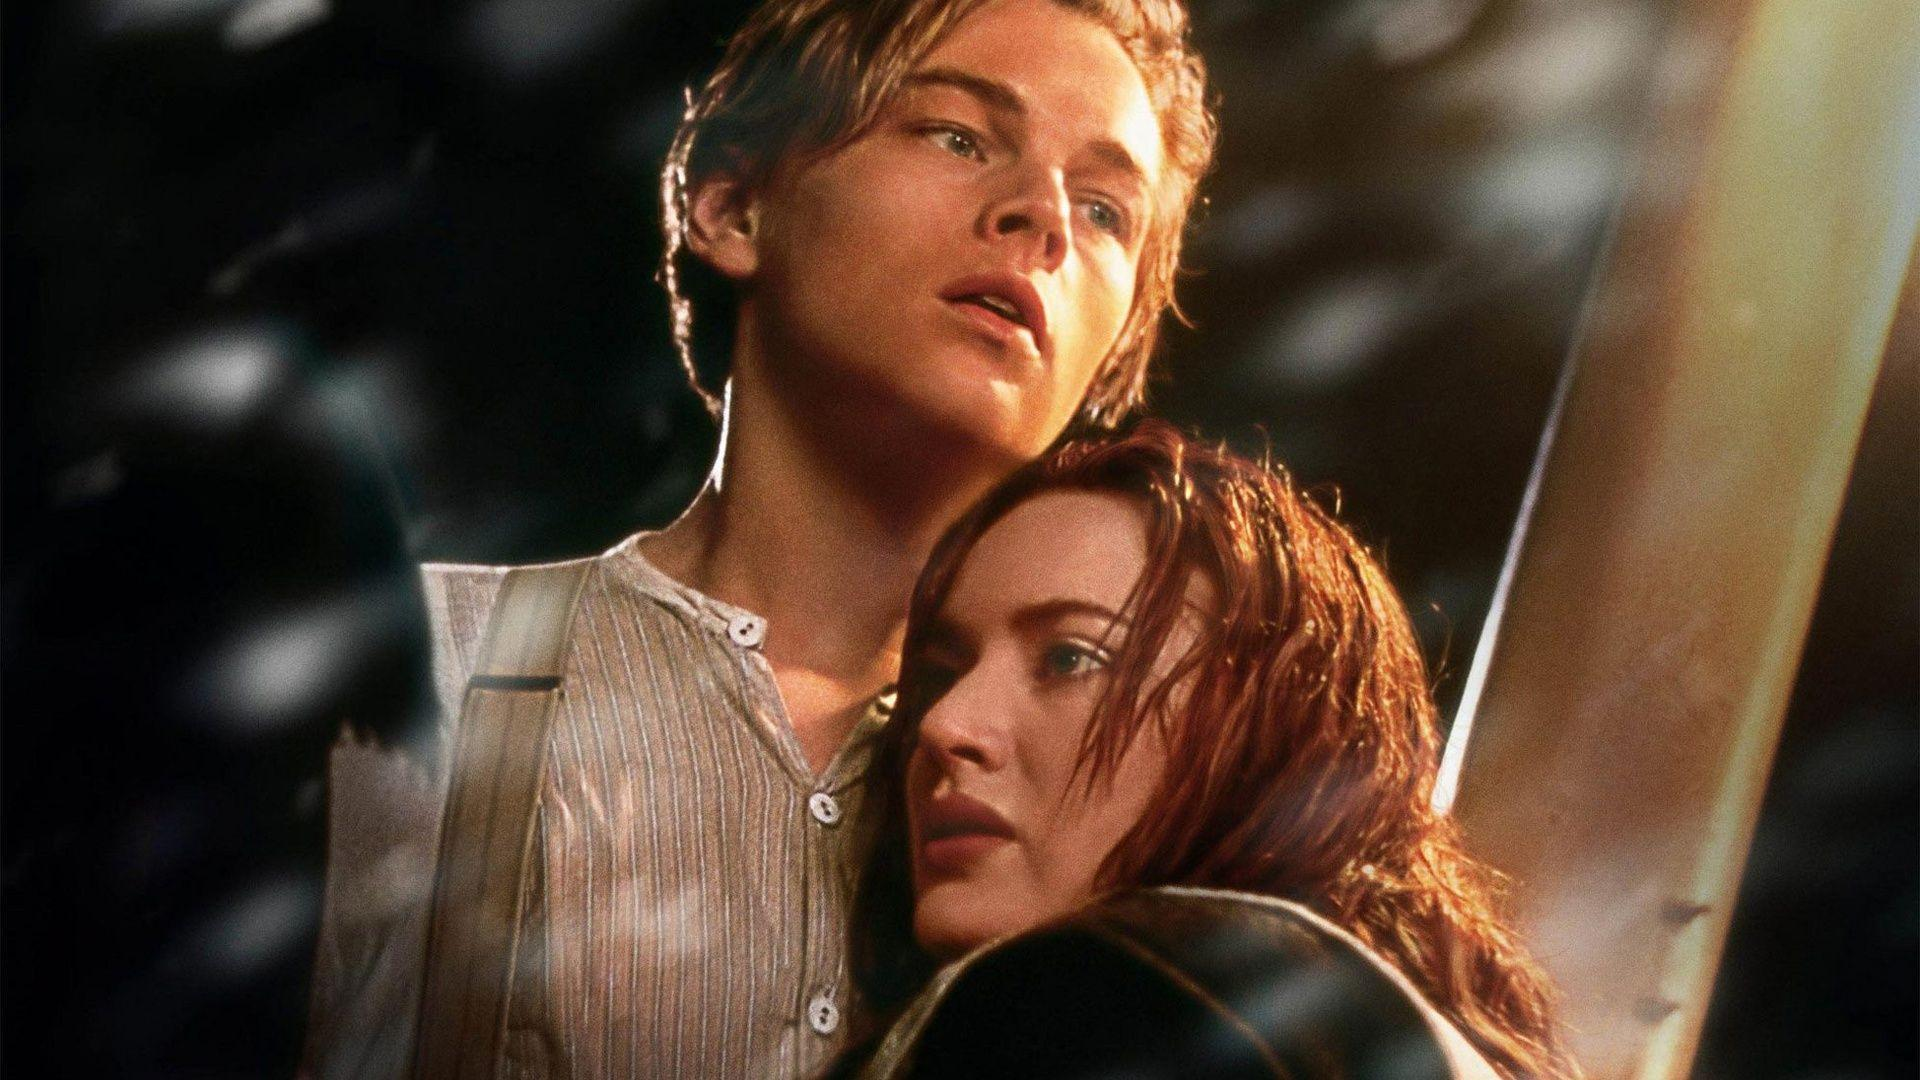 Leonardo Dicaprio Hd Wallpapers With Quotes Titanic Wallpapers For Desktop Wallpaper Cave